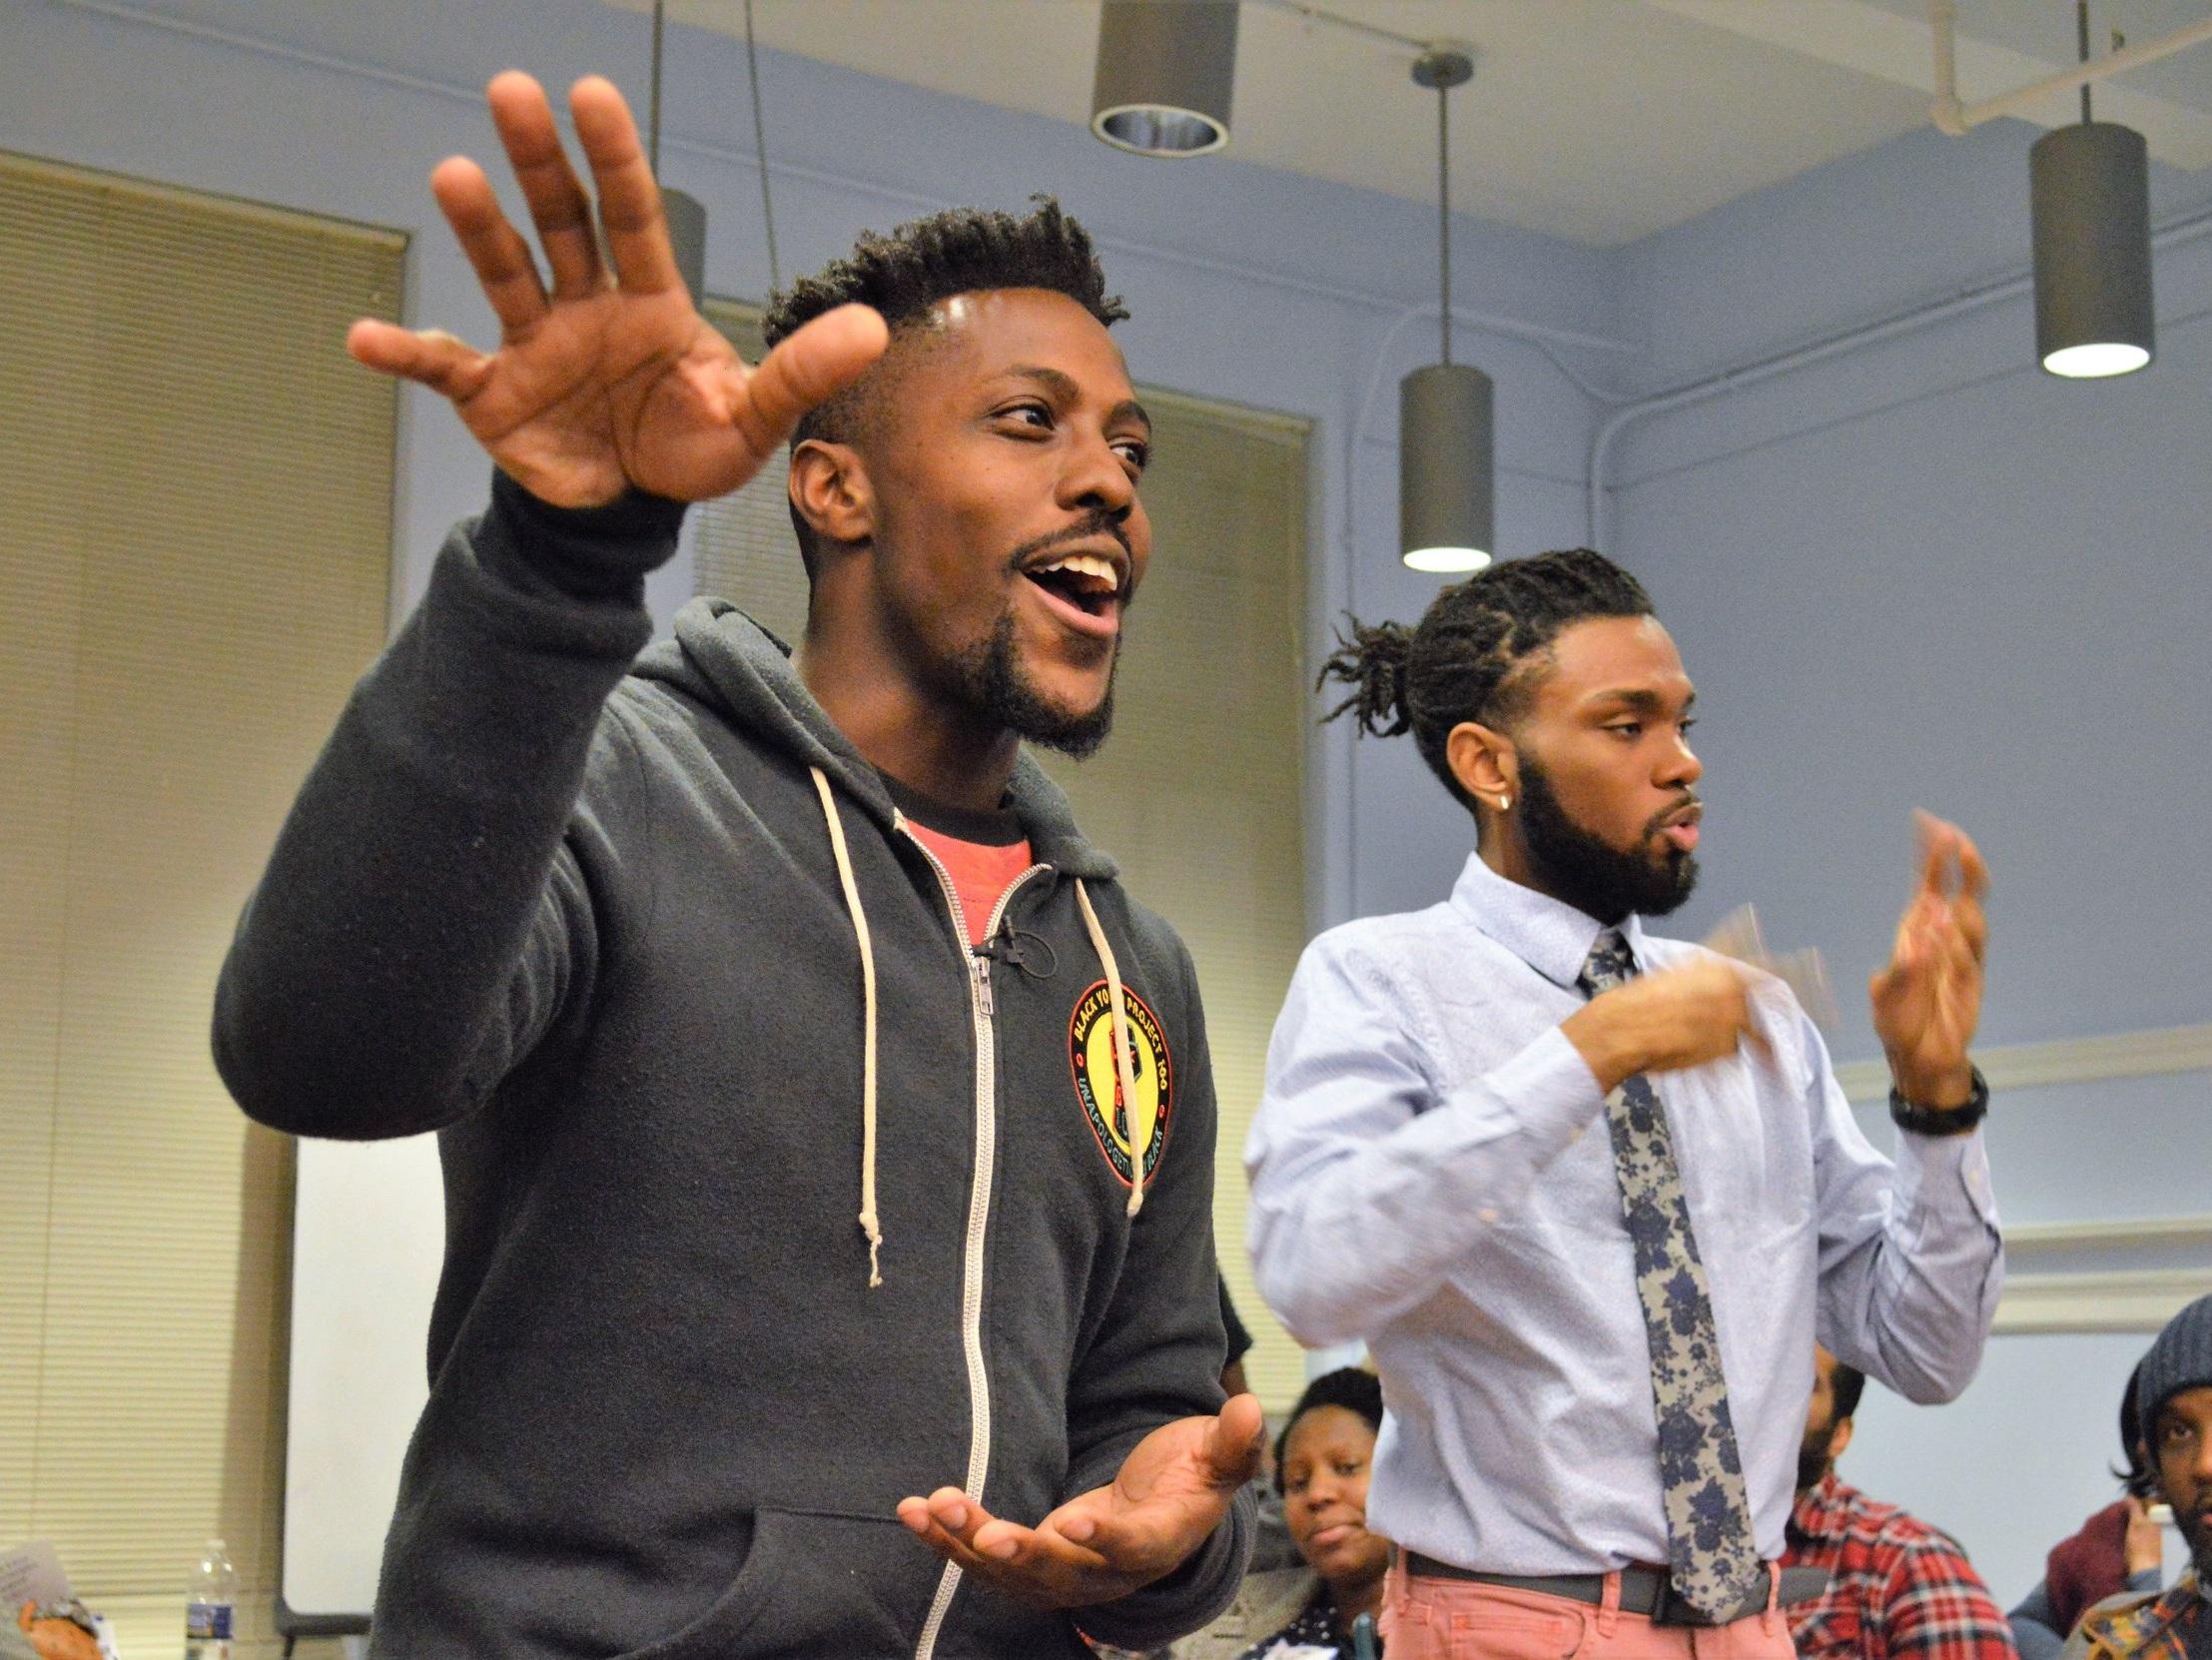 Jonathan Lykes of BYP 100 led the crowd in freedom songs and liberation chants.